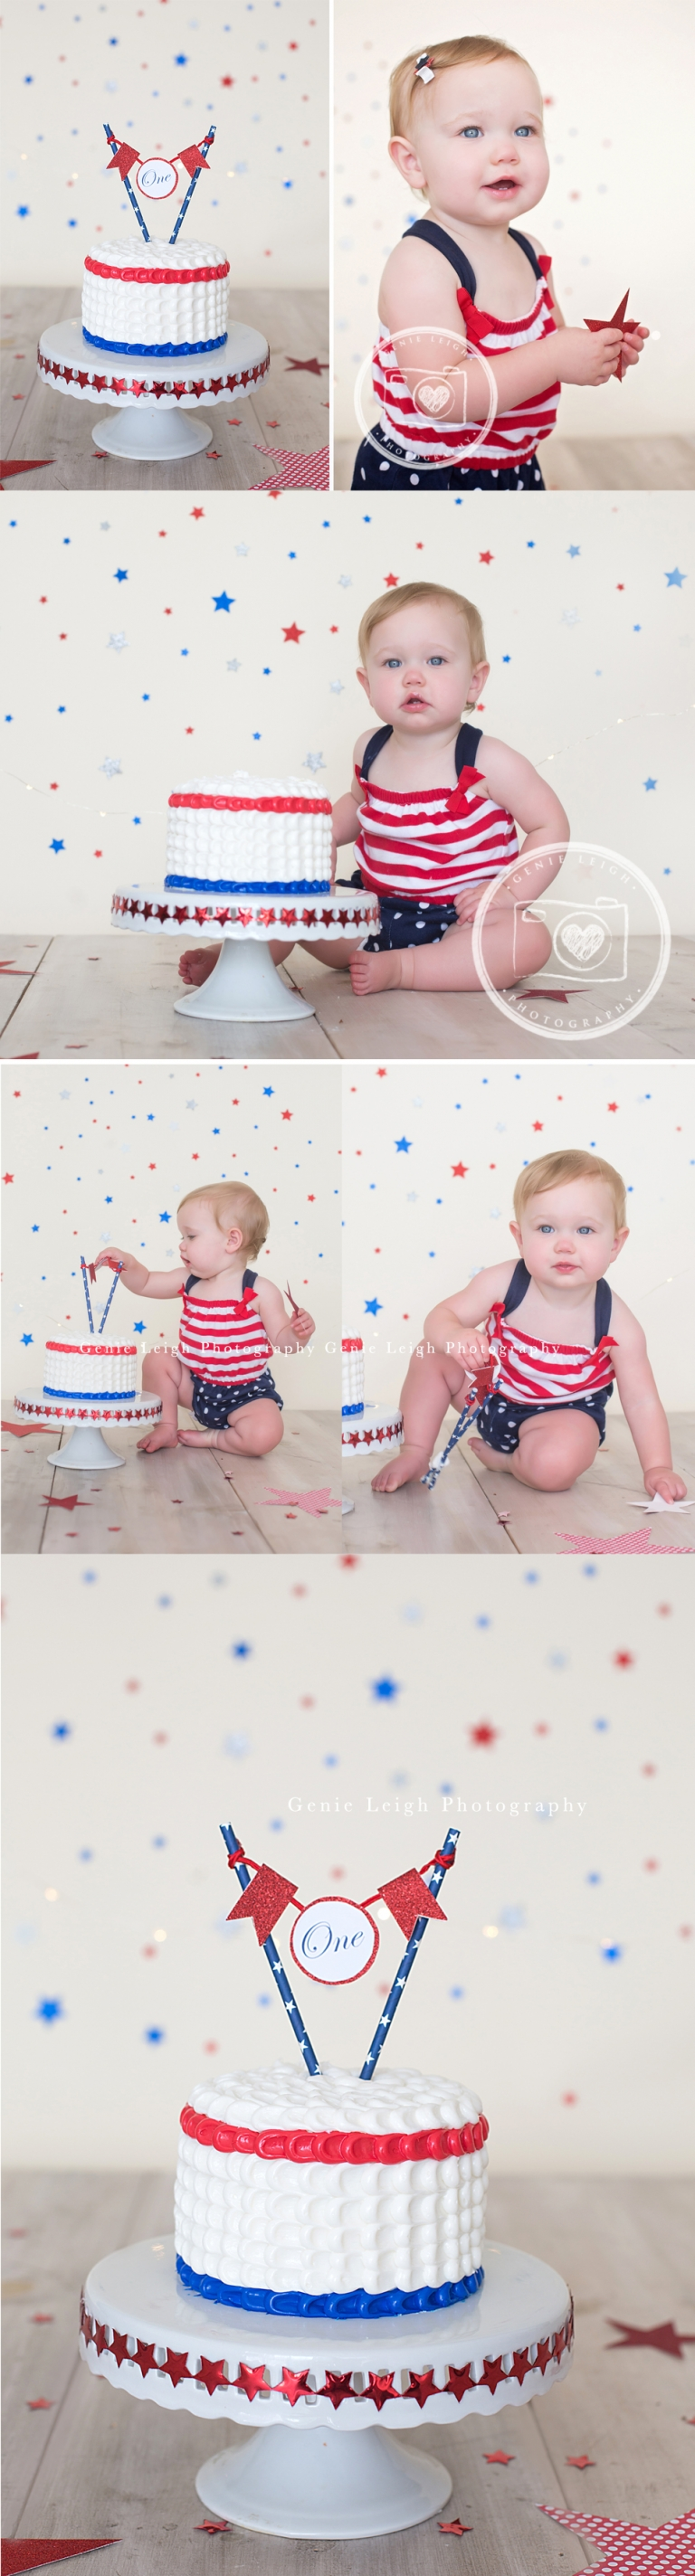 4th of July Cake Smash Genie Leigh Photography